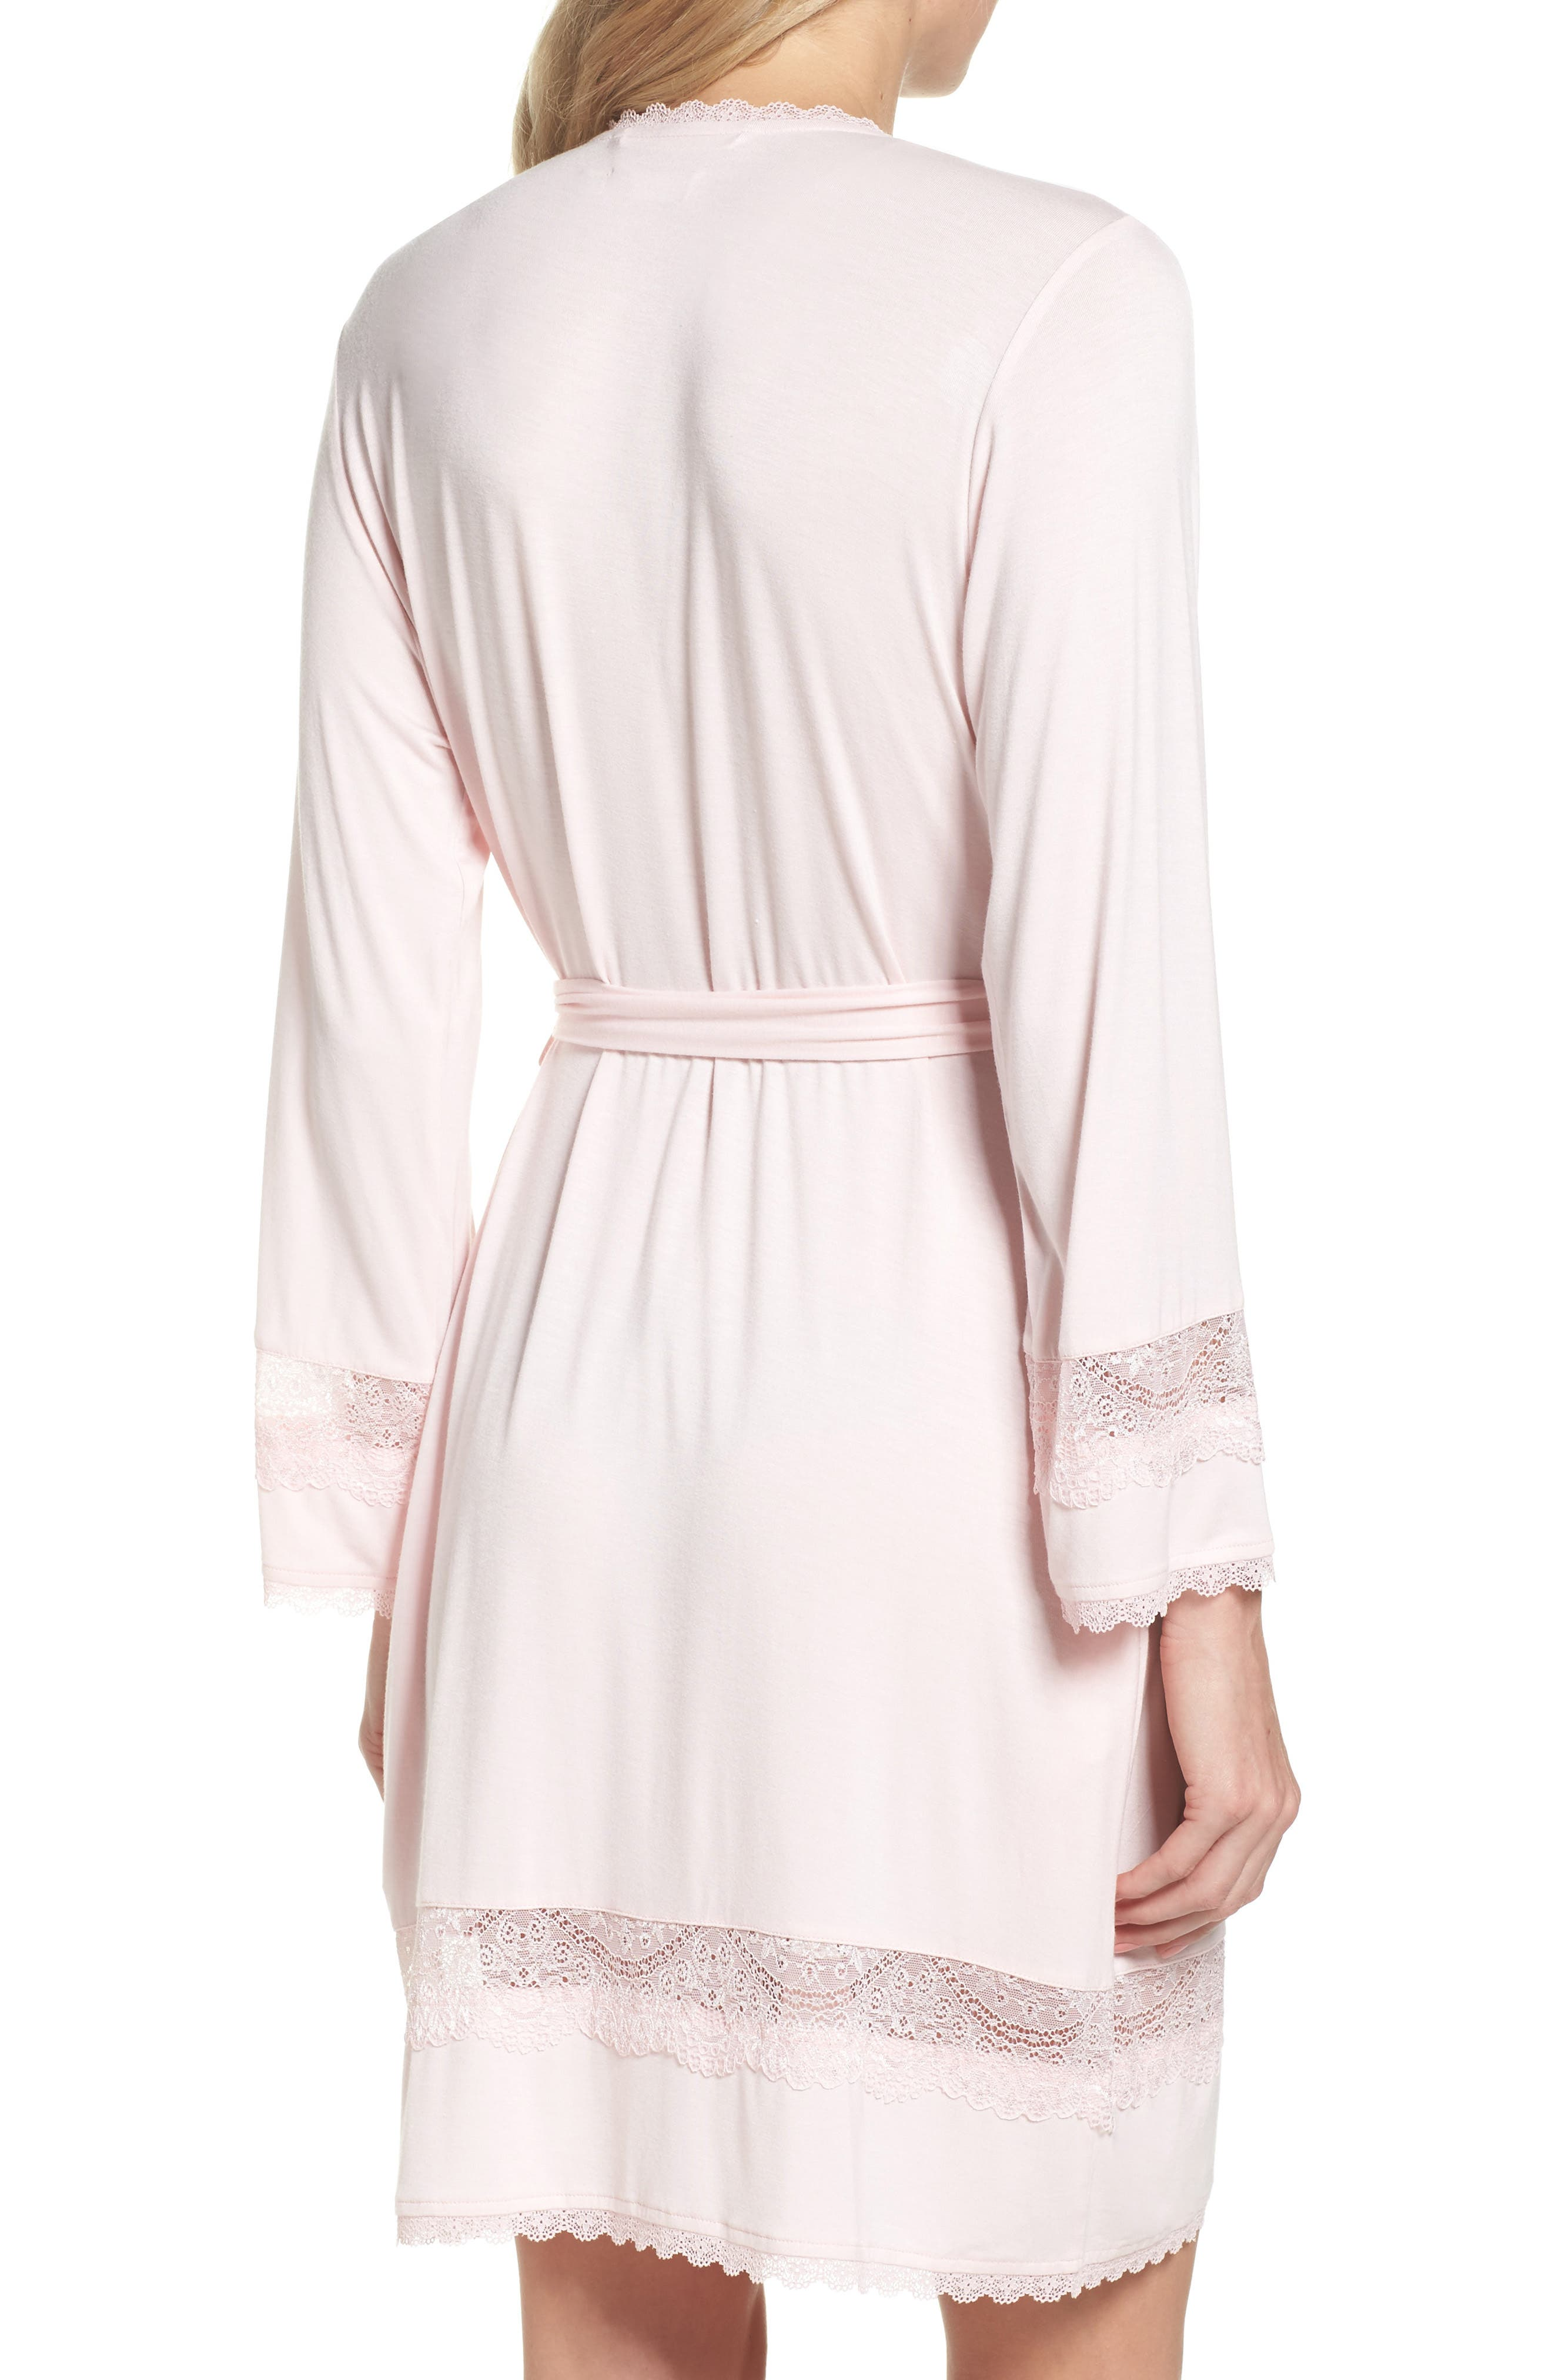 Cosima Embellished Robe,                             Alternate thumbnail 2, color,                             Seashell Pink